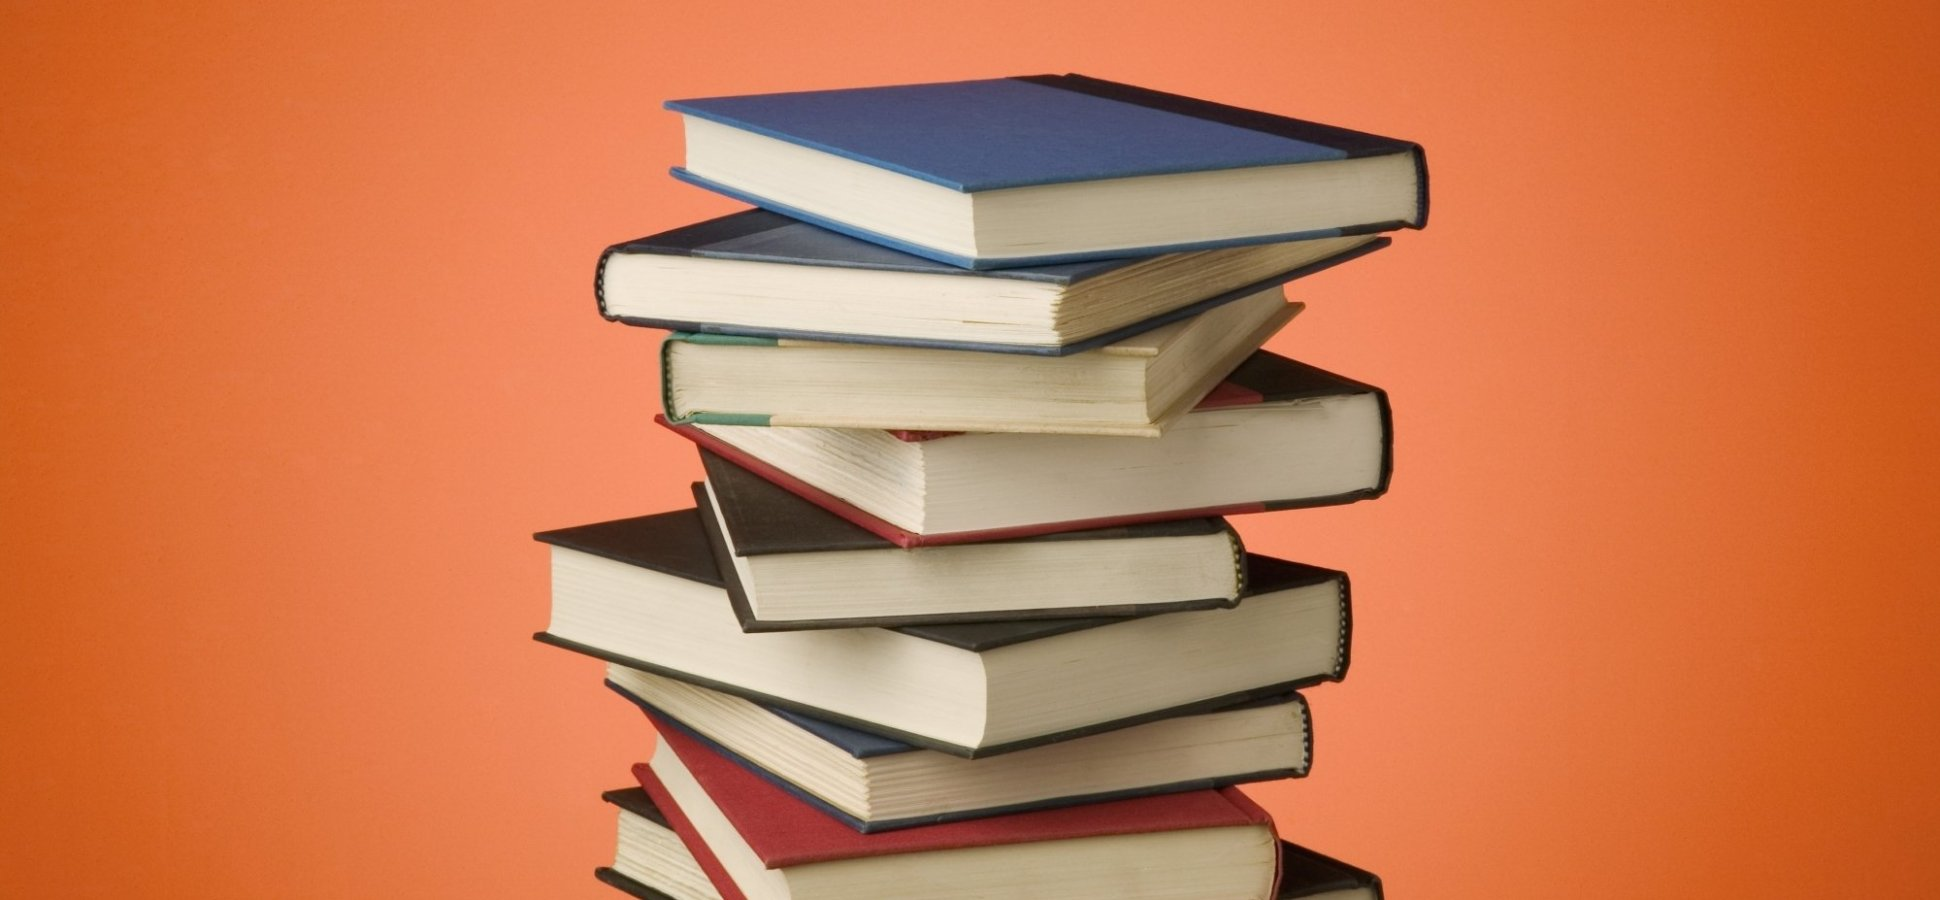 12 New Books Packed With Fresh Ideas, Courtesy of Adam Grant